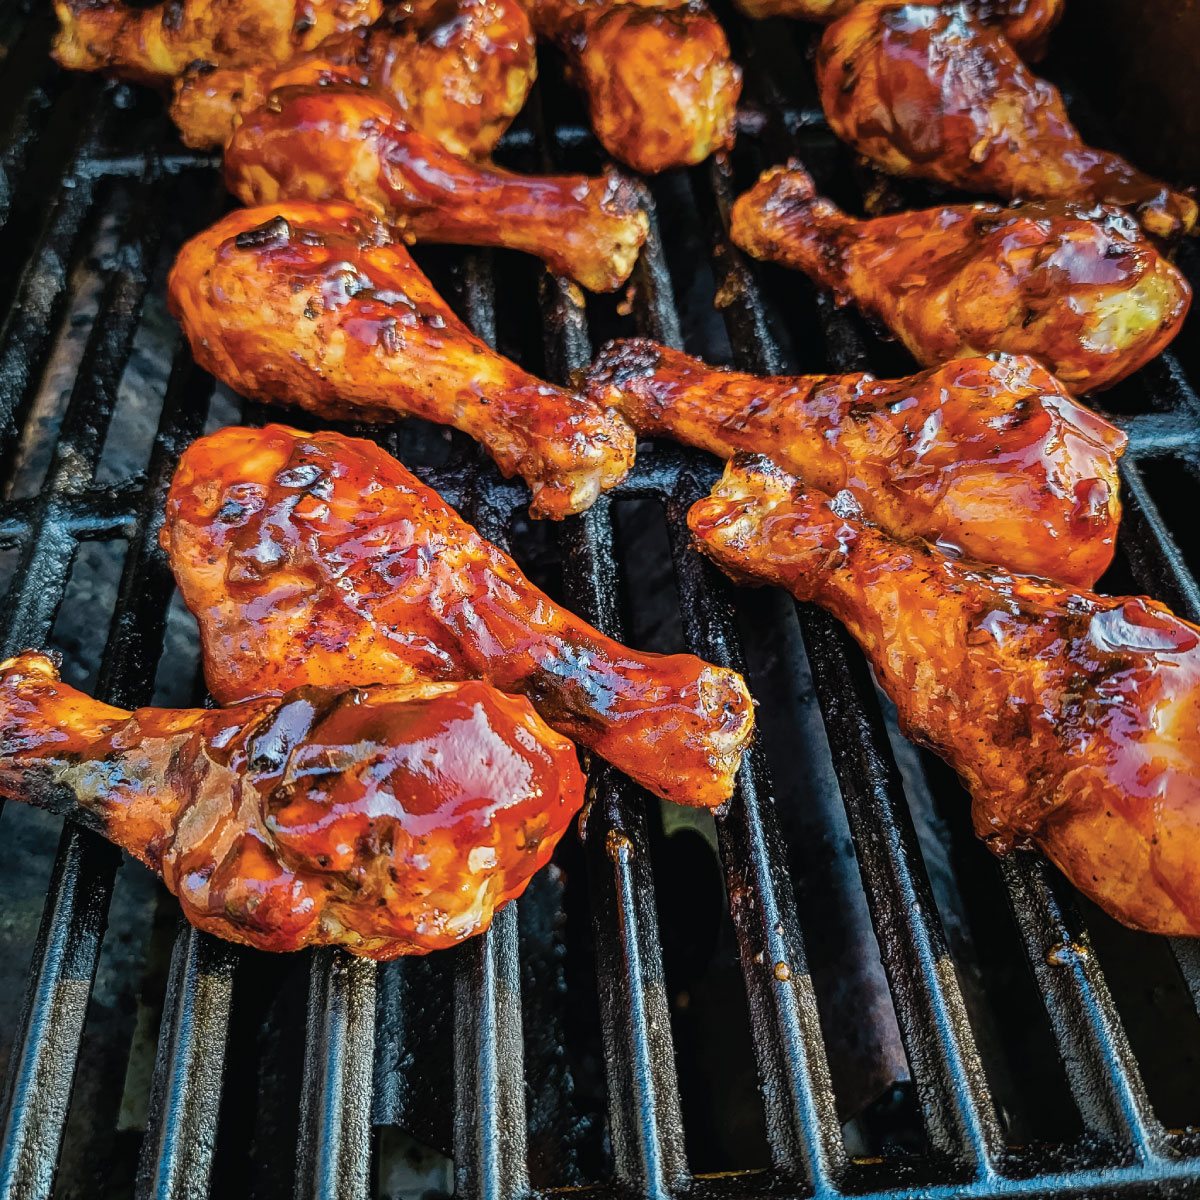 Chicken legs on the grill with BBQ sauce just added to them.